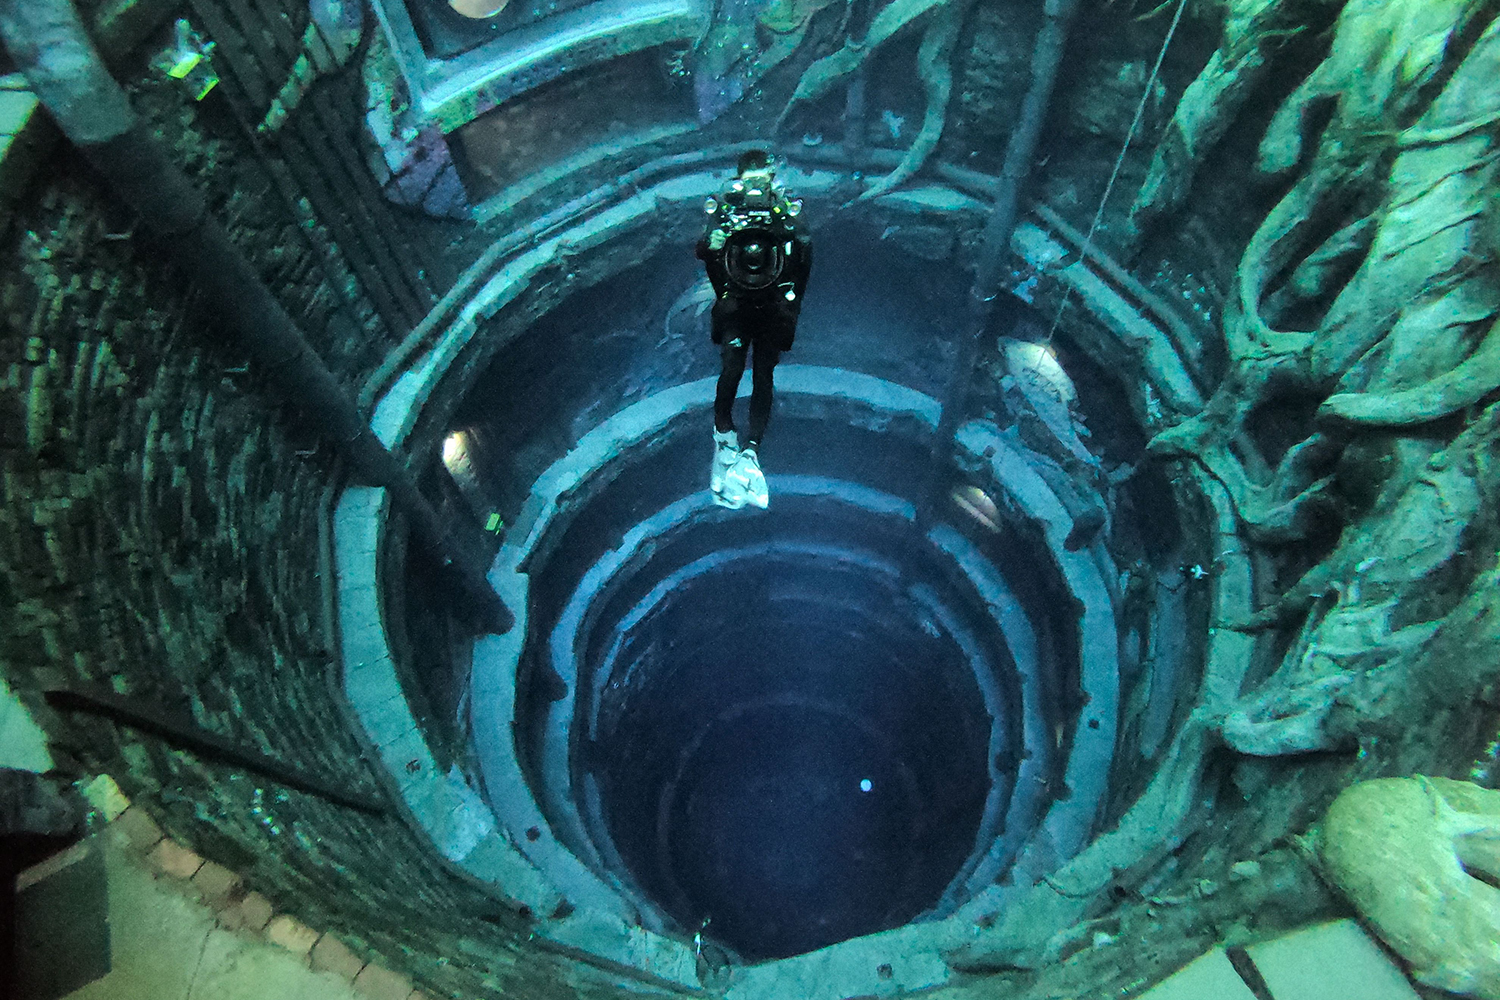 Deepest swimming pool in the world in Dubai